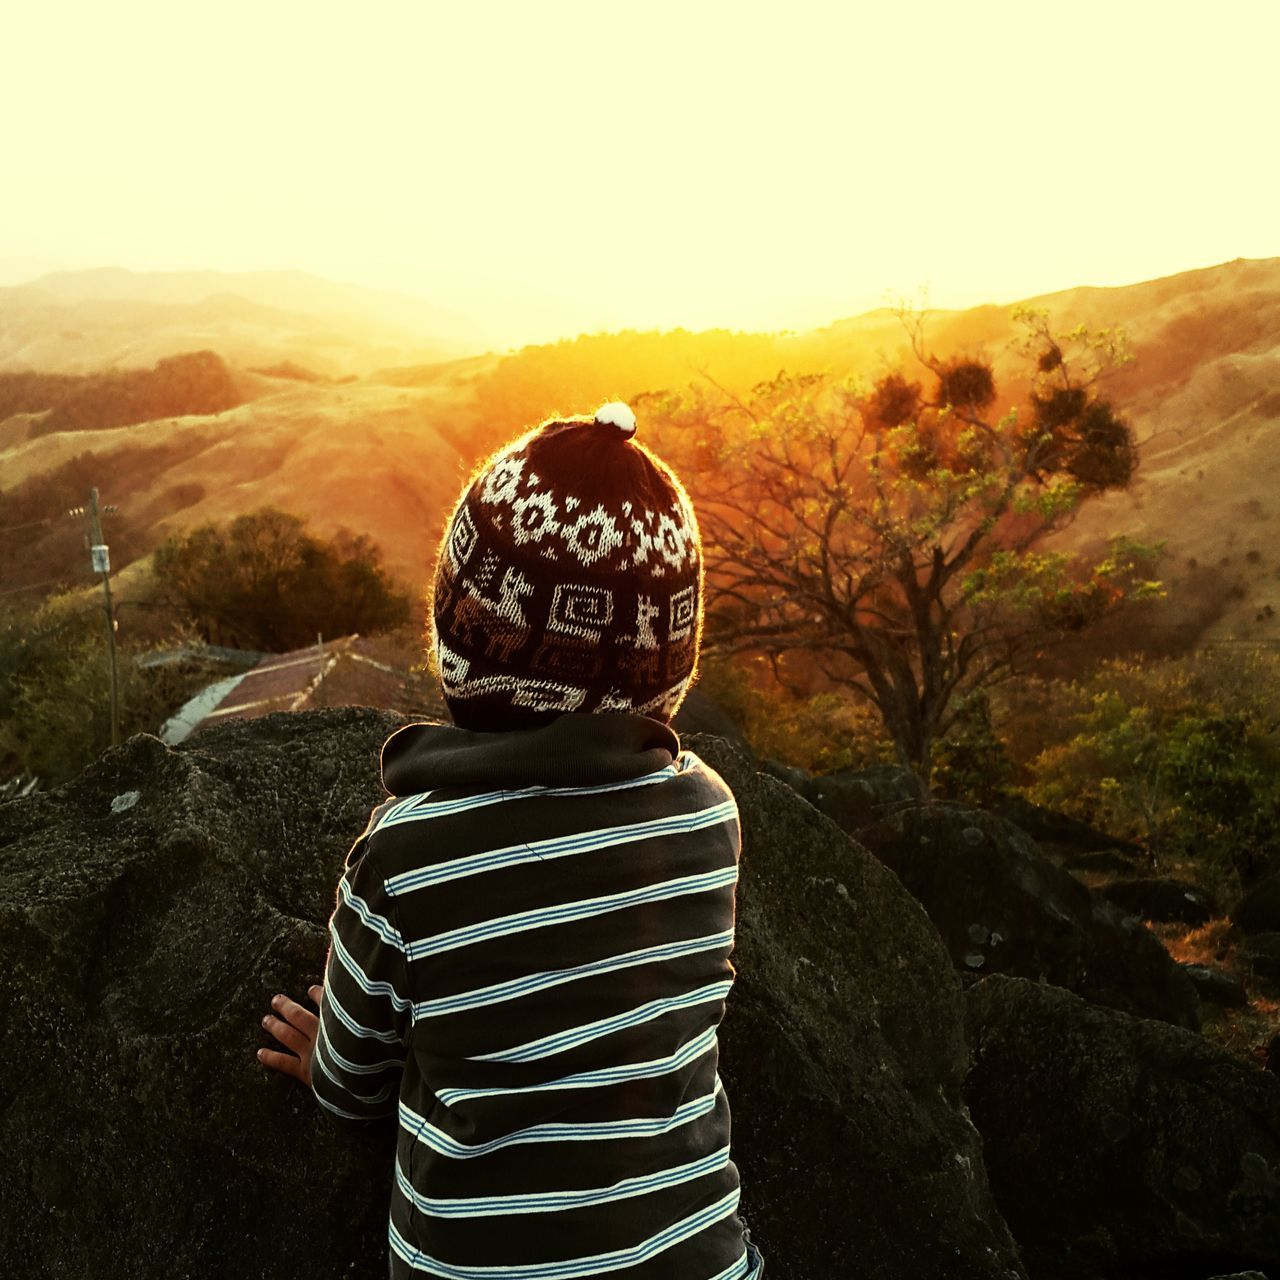 rear view, real people, striped, childhood, standing, boys, one person, casual clothing, outdoors, rock - object, nature, leisure activity, field, day, lifestyles, landscape, mountain, one boy only, tree, beauty in nature, sky, people